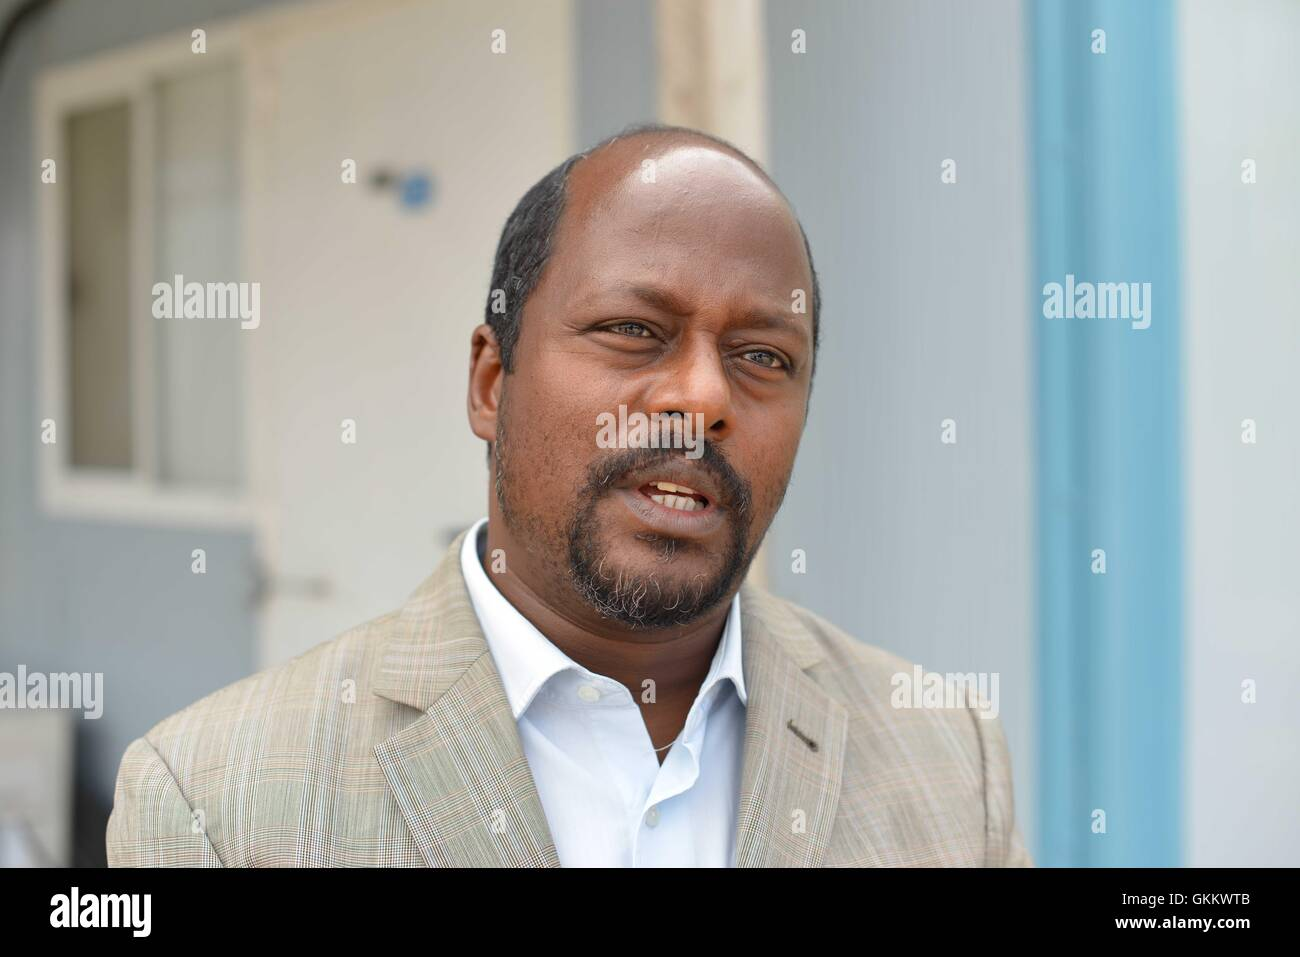 Dr. Omar Abdulle Alasow, the Acting Head of the AMISOM protection, human rights and gender cluster, in an interview - Stock Image